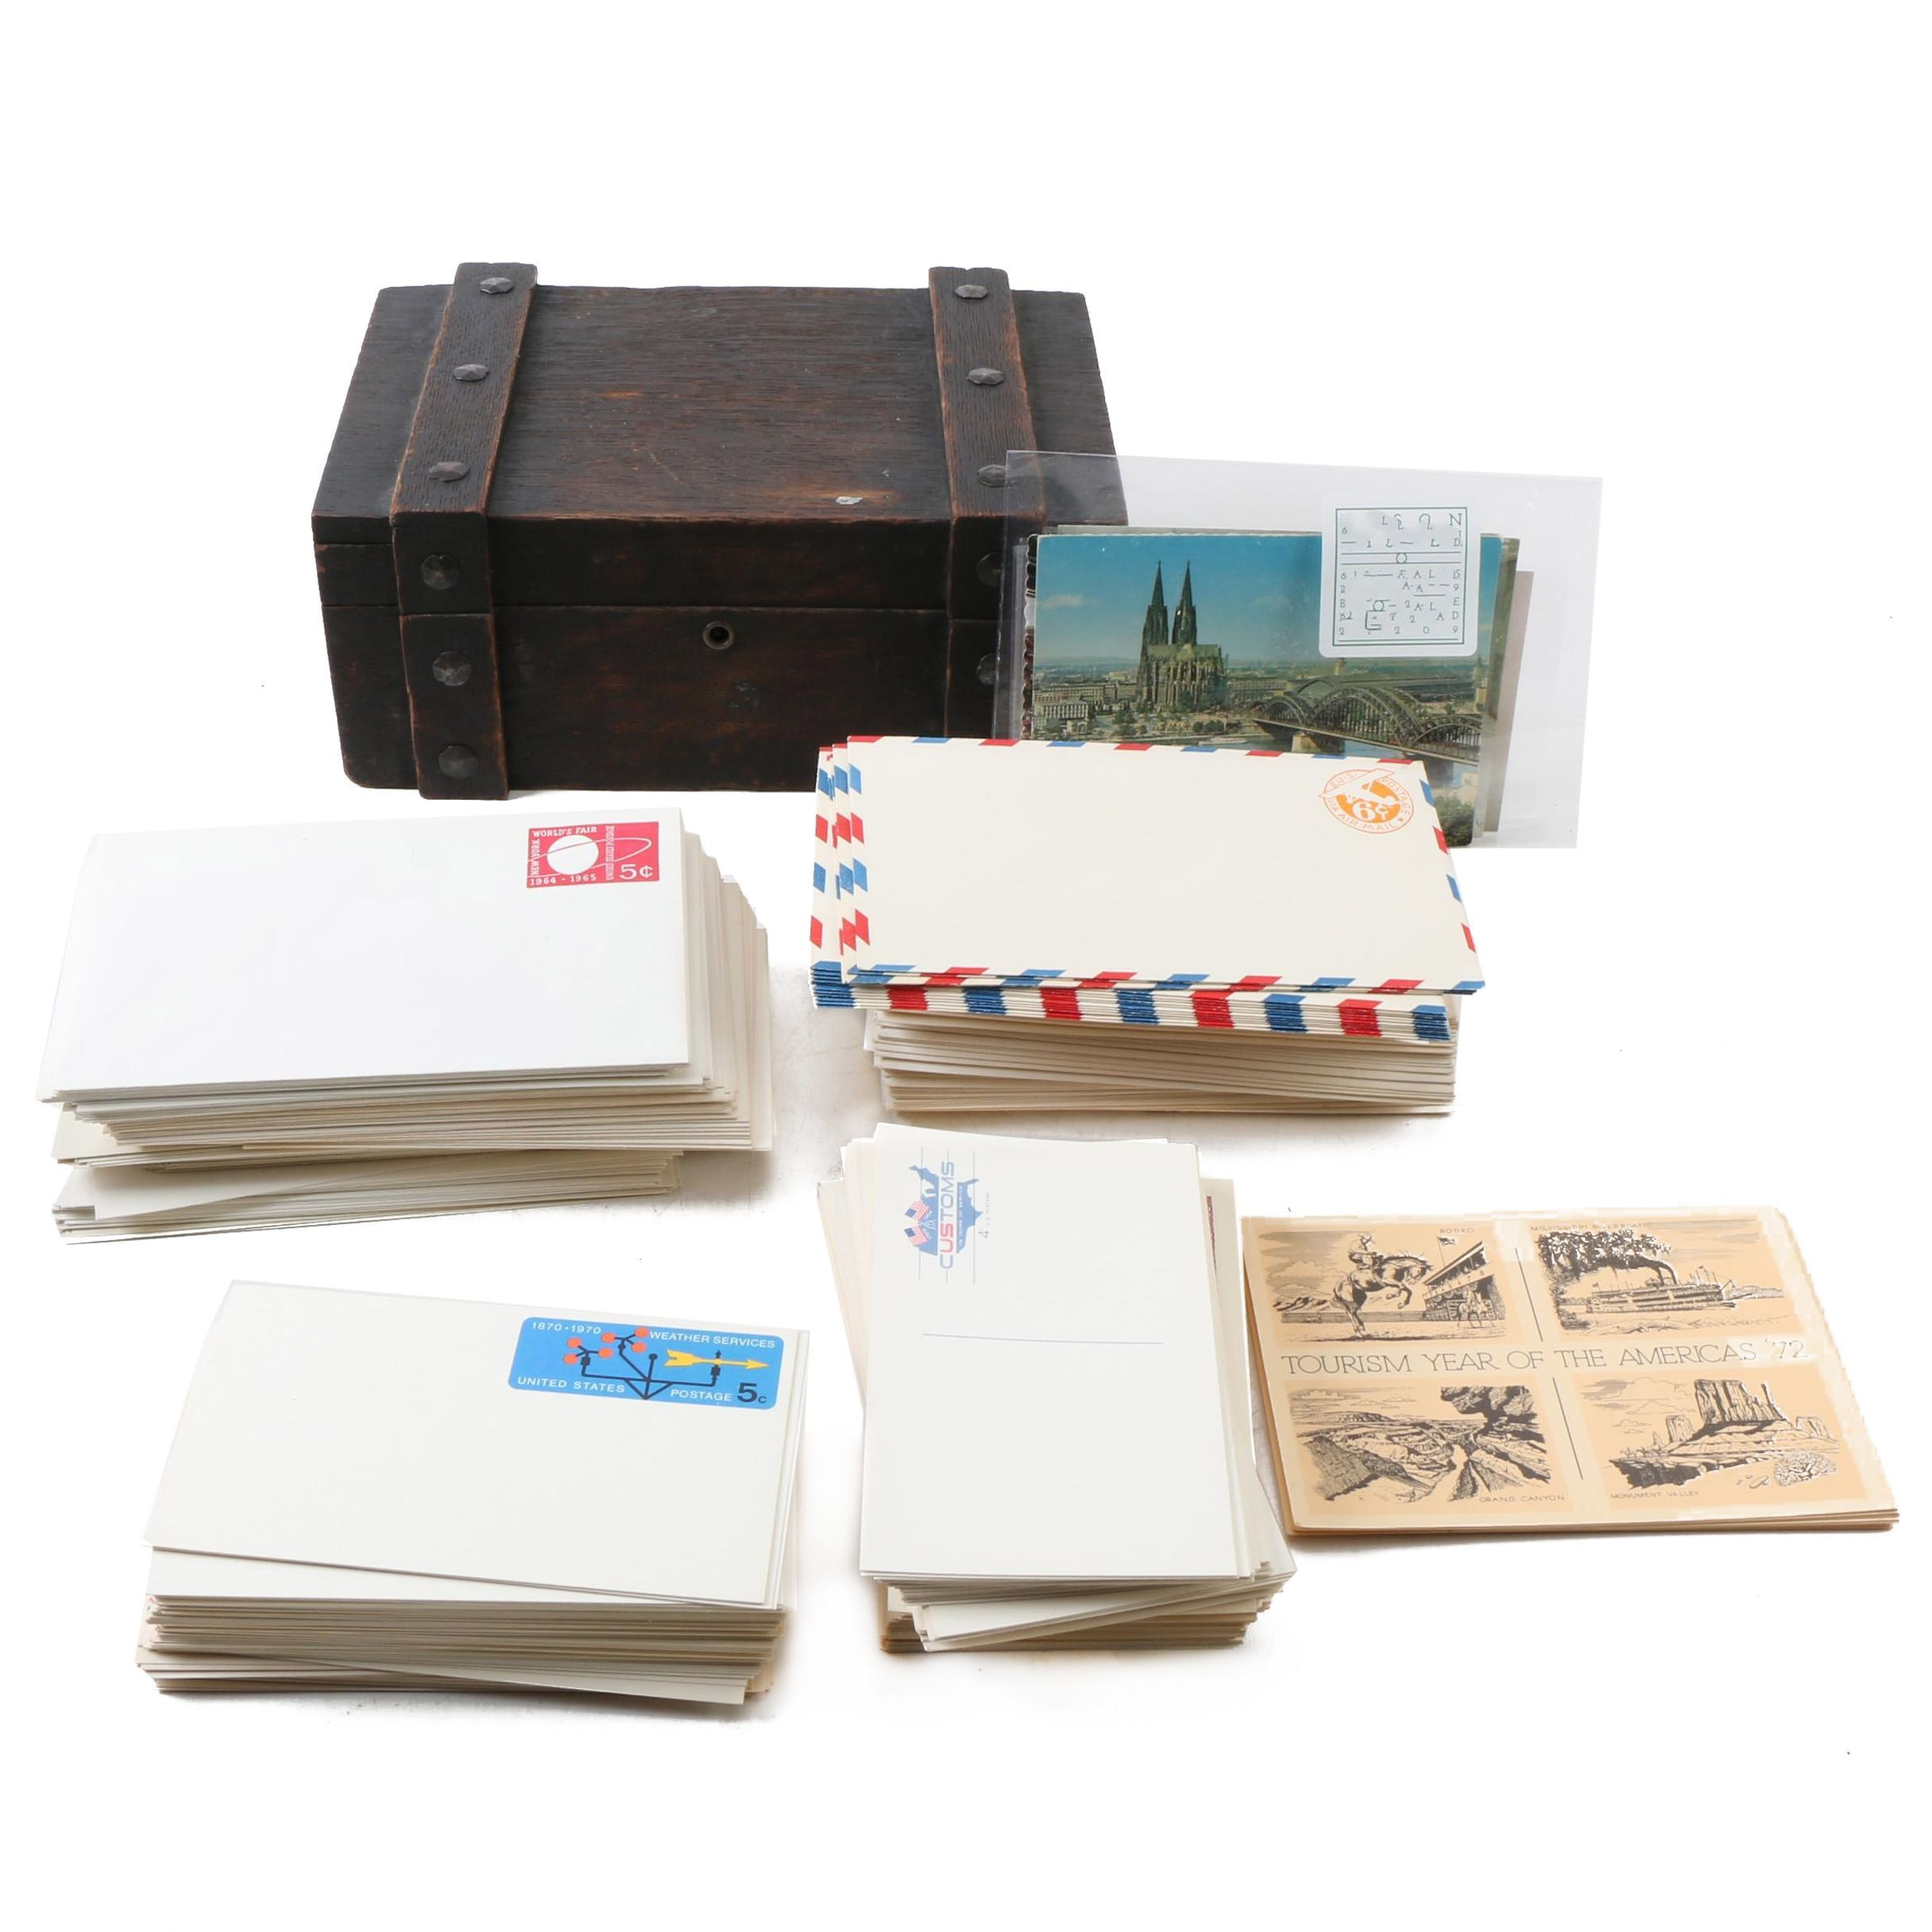 Vintage Humidor, Postcards and First Day Covers